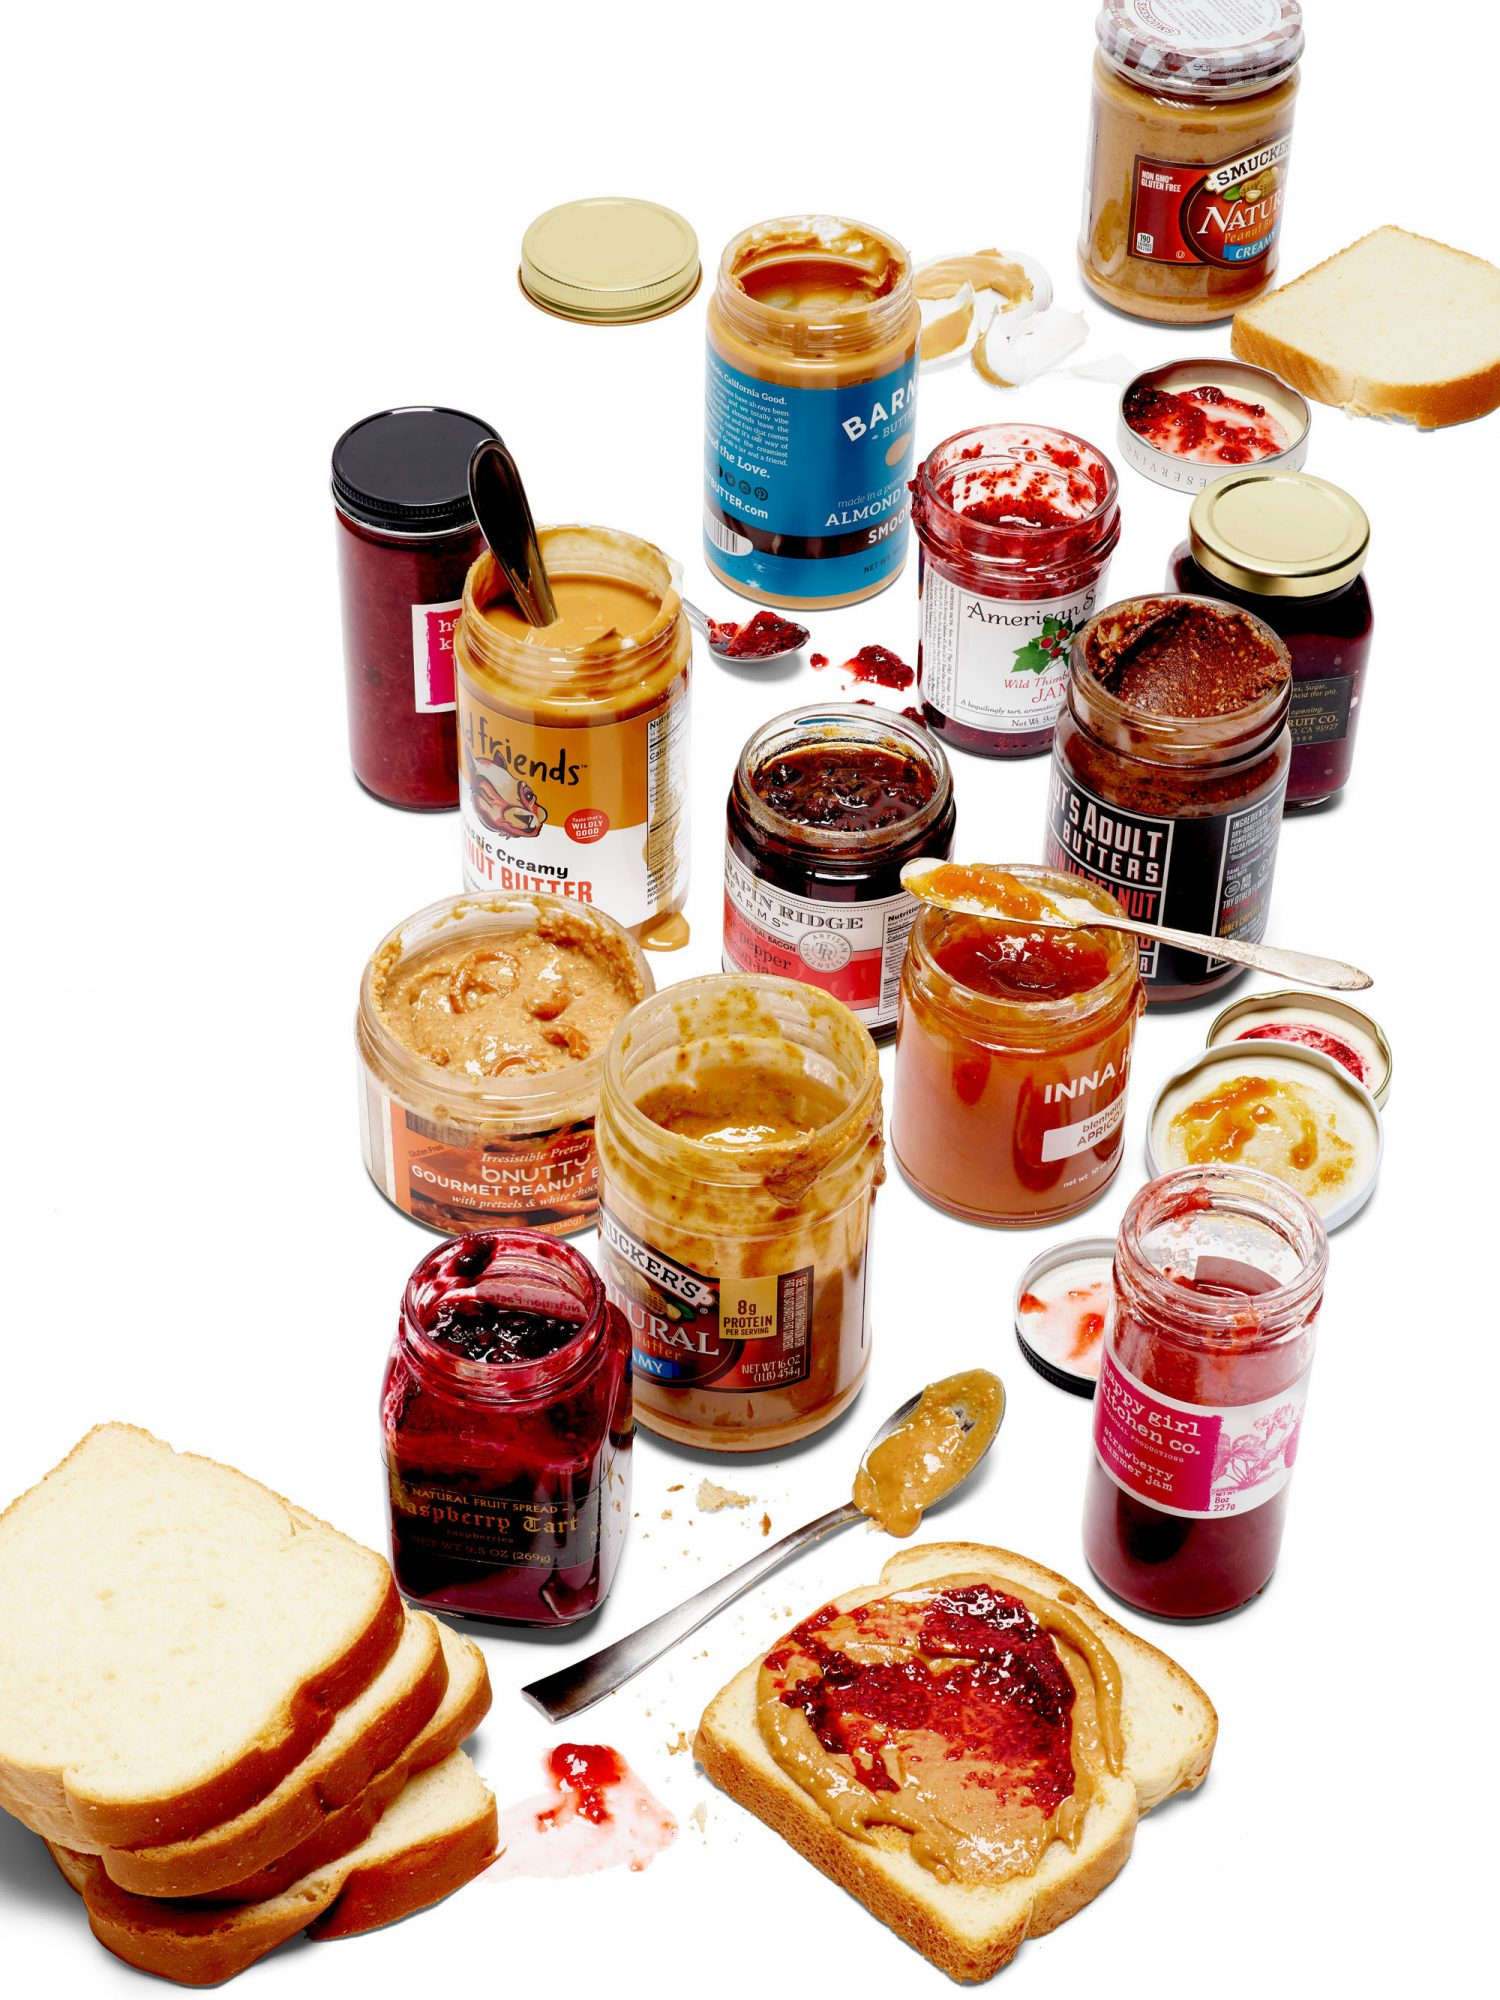 jars of peanut butter and jelly